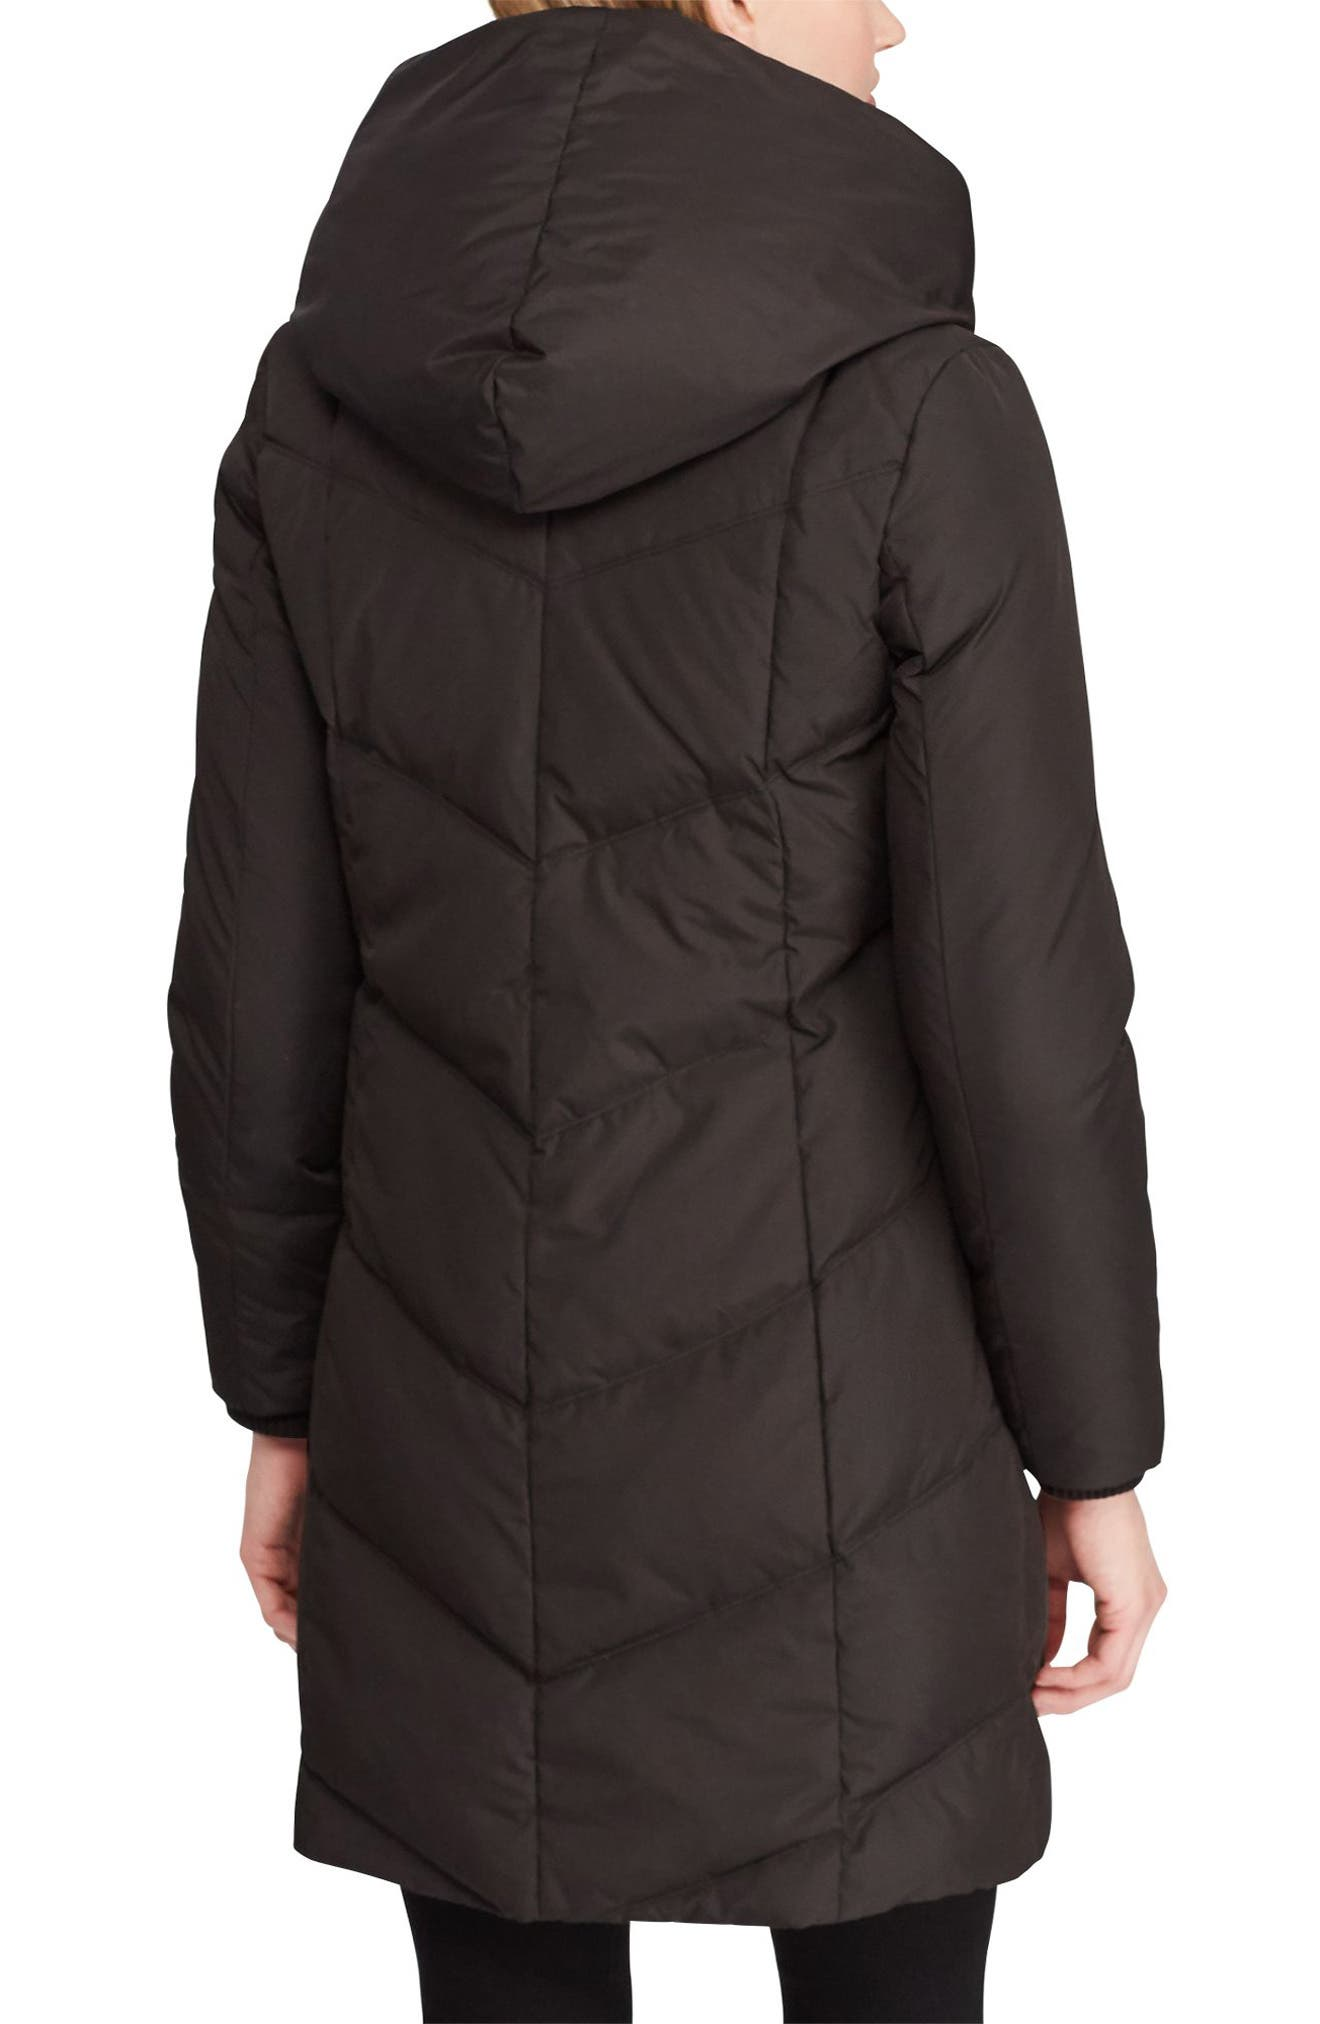 LAUREN RALPH LAUREN,                             Pillow Hood Quilted Coat,                             Alternate thumbnail 2, color,                             BLACK